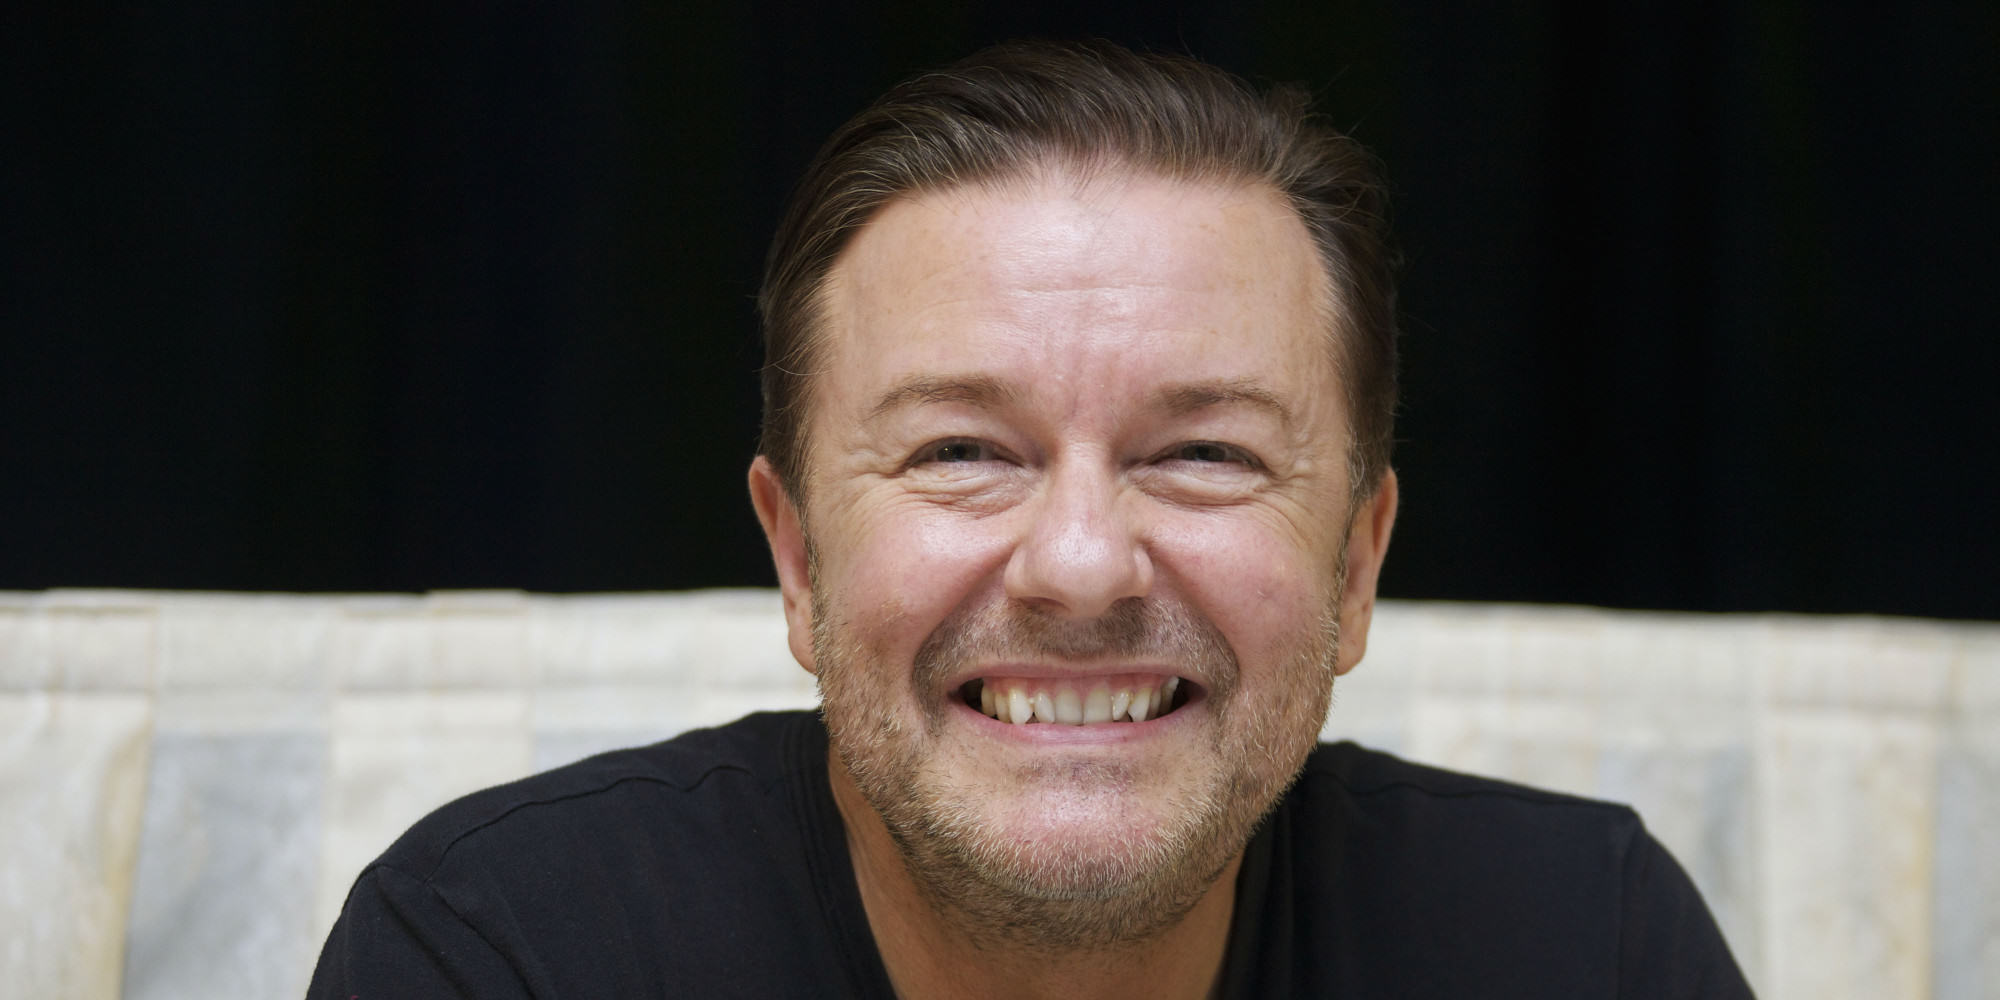 gervais 1 Did Ricky Gervais Go Too Far At The Golden Globes Or Are People Oversensitive?